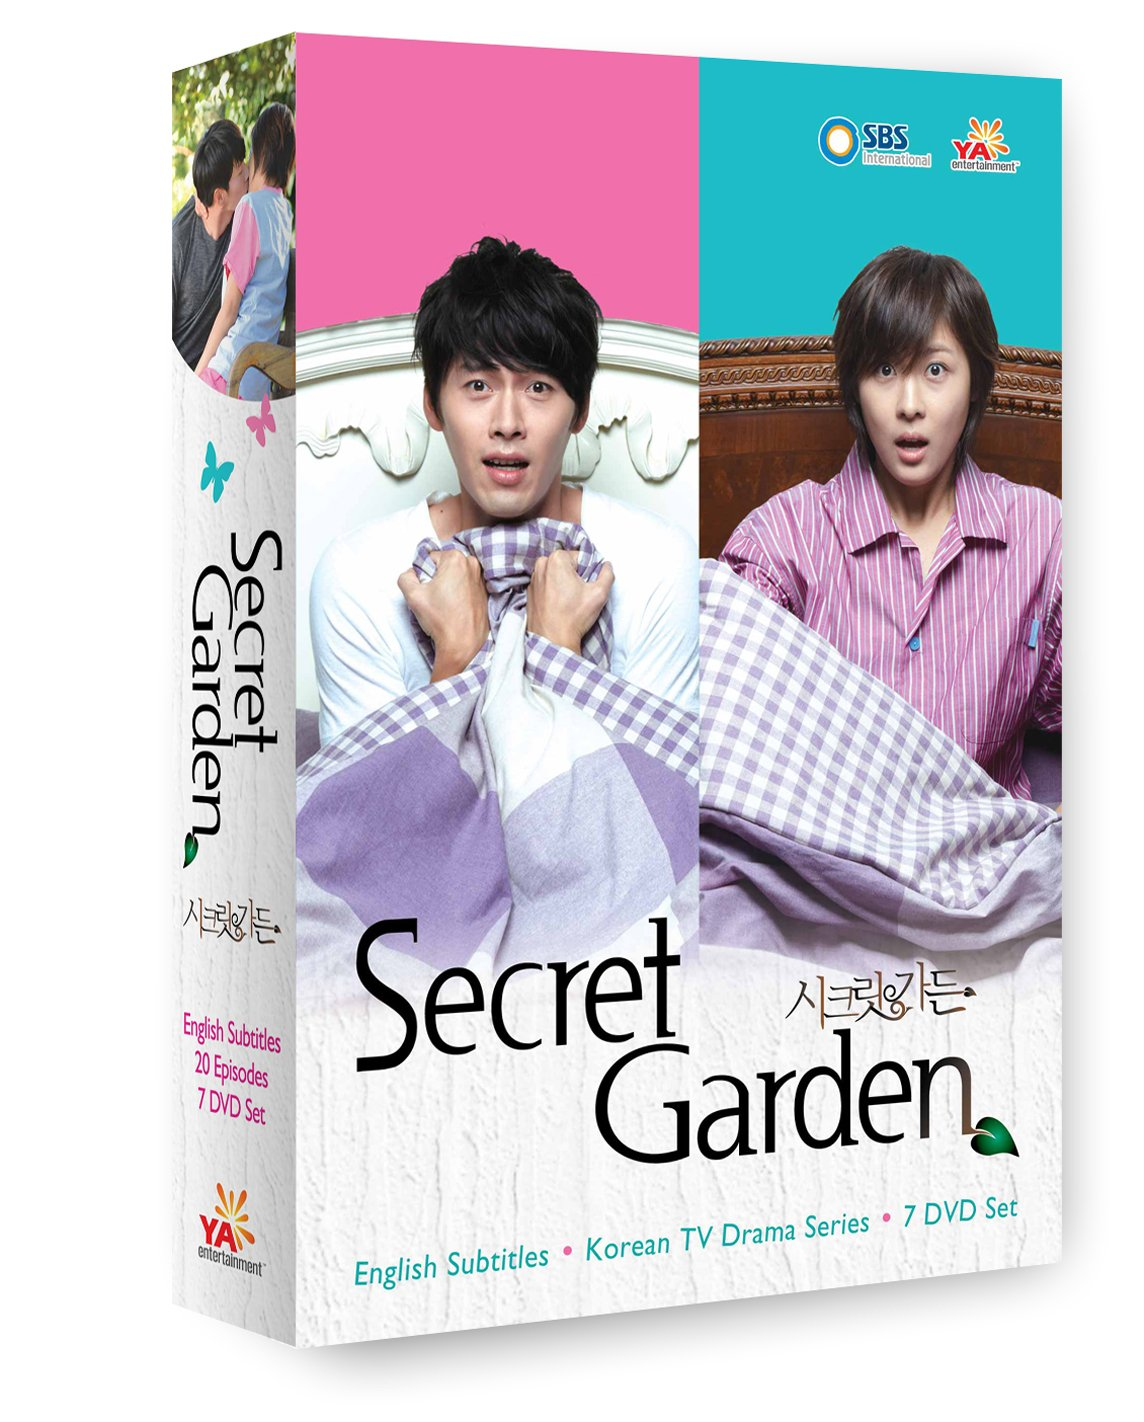 Amazon com: Secret Garden: Hyun Bin, Ha Ji Won, Shin Woo